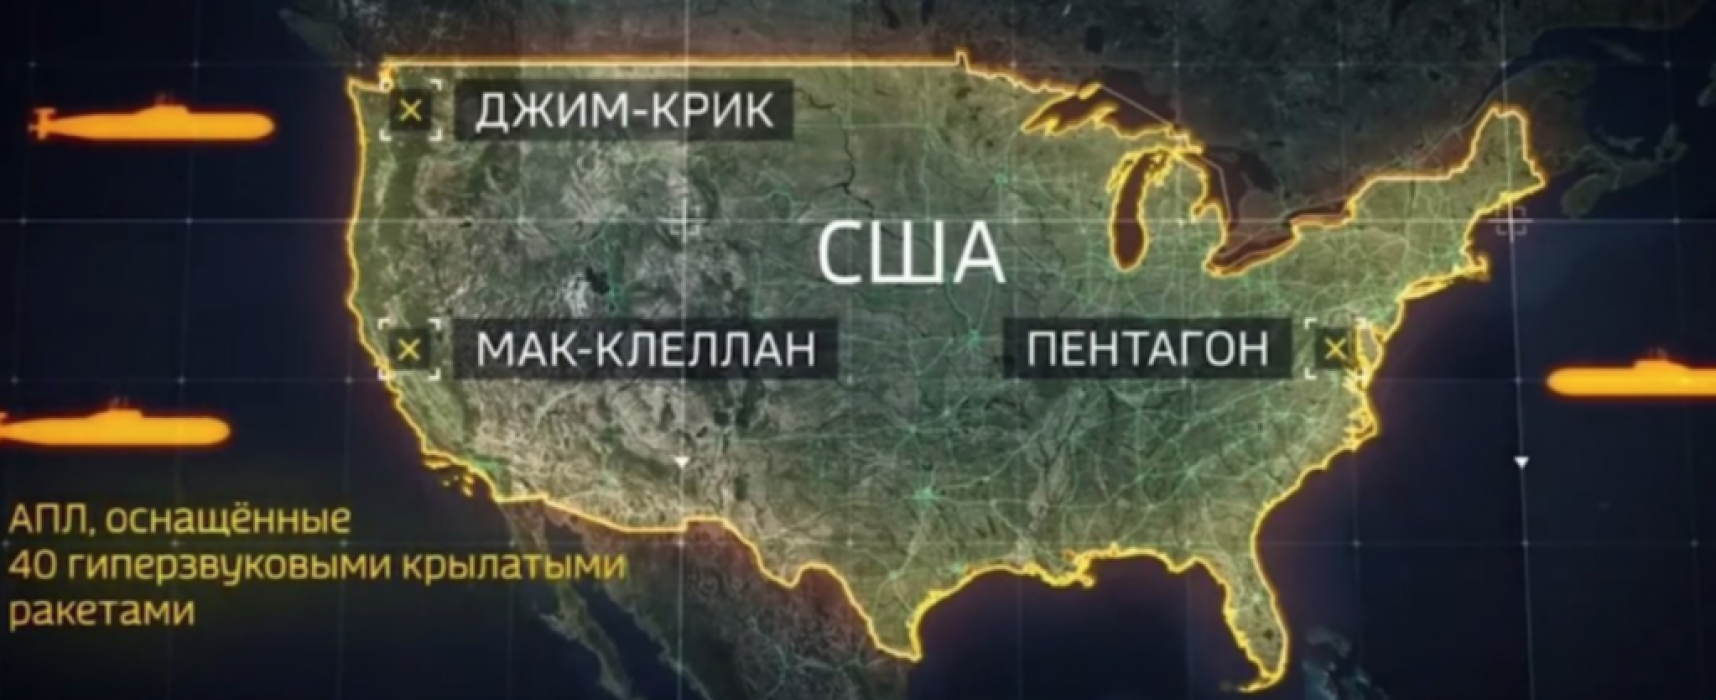 Russian TV host announces targets in the U.S. – some are civilian